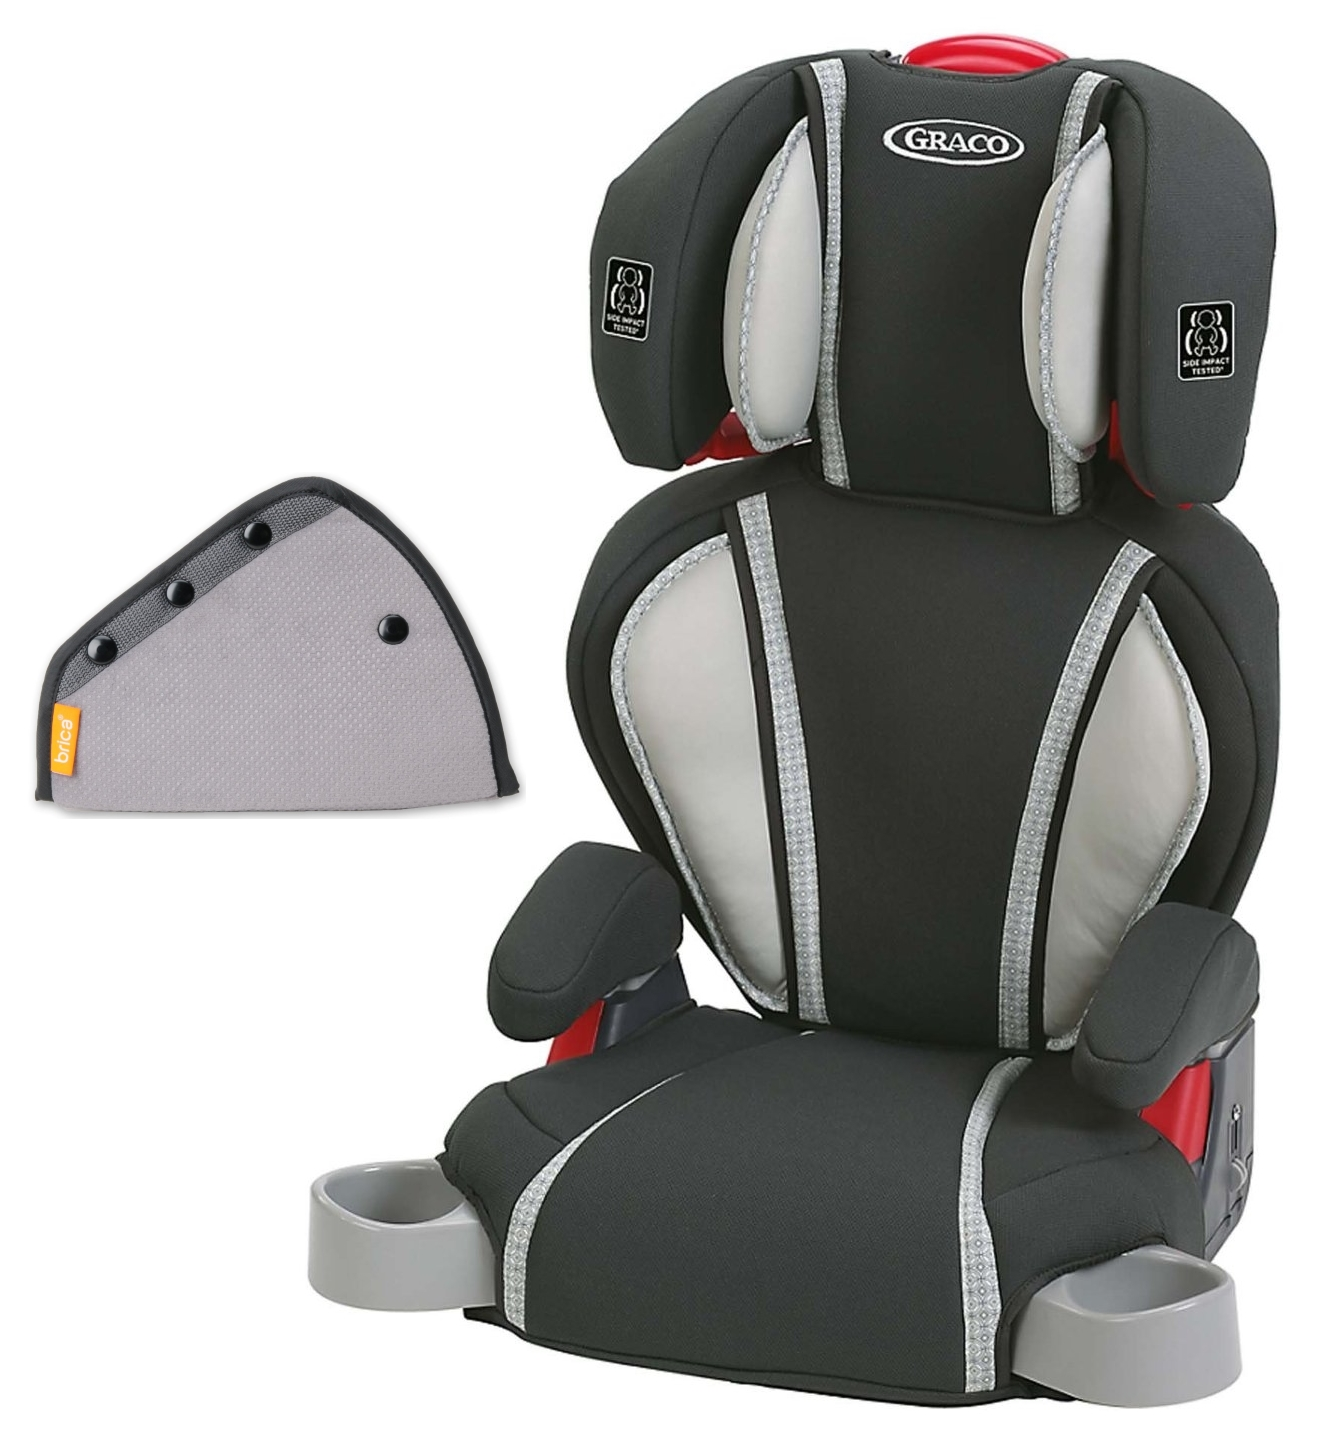 Graco Highback TurboBooster Booster Car Seat with Seat Belt Adjuster, Glacier